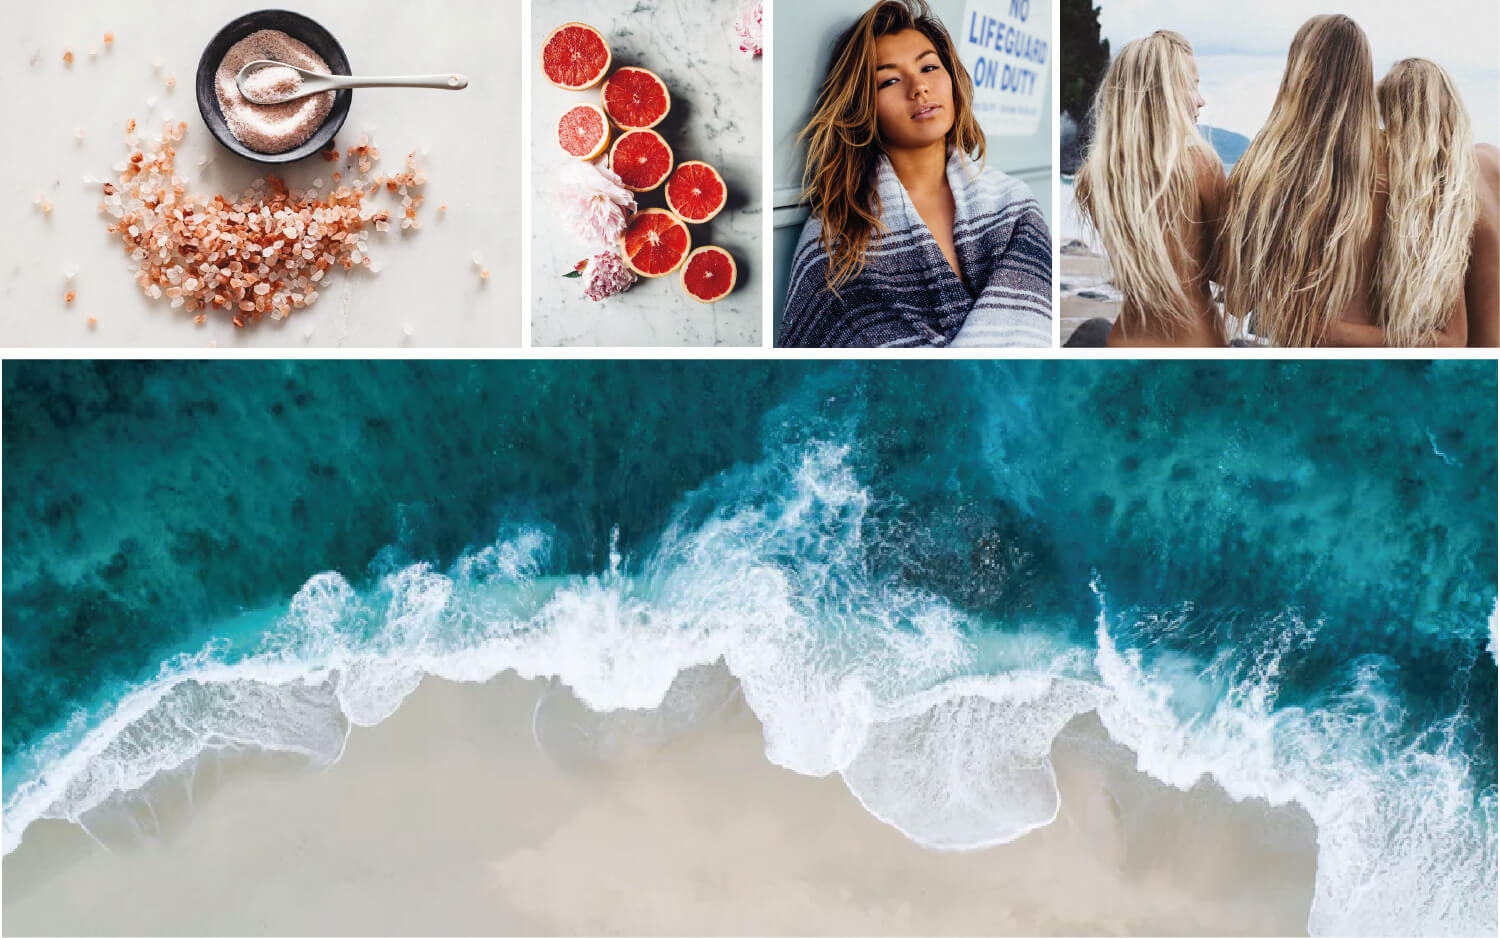 Ondas surferas todo el año con Hairlive Sea Salt